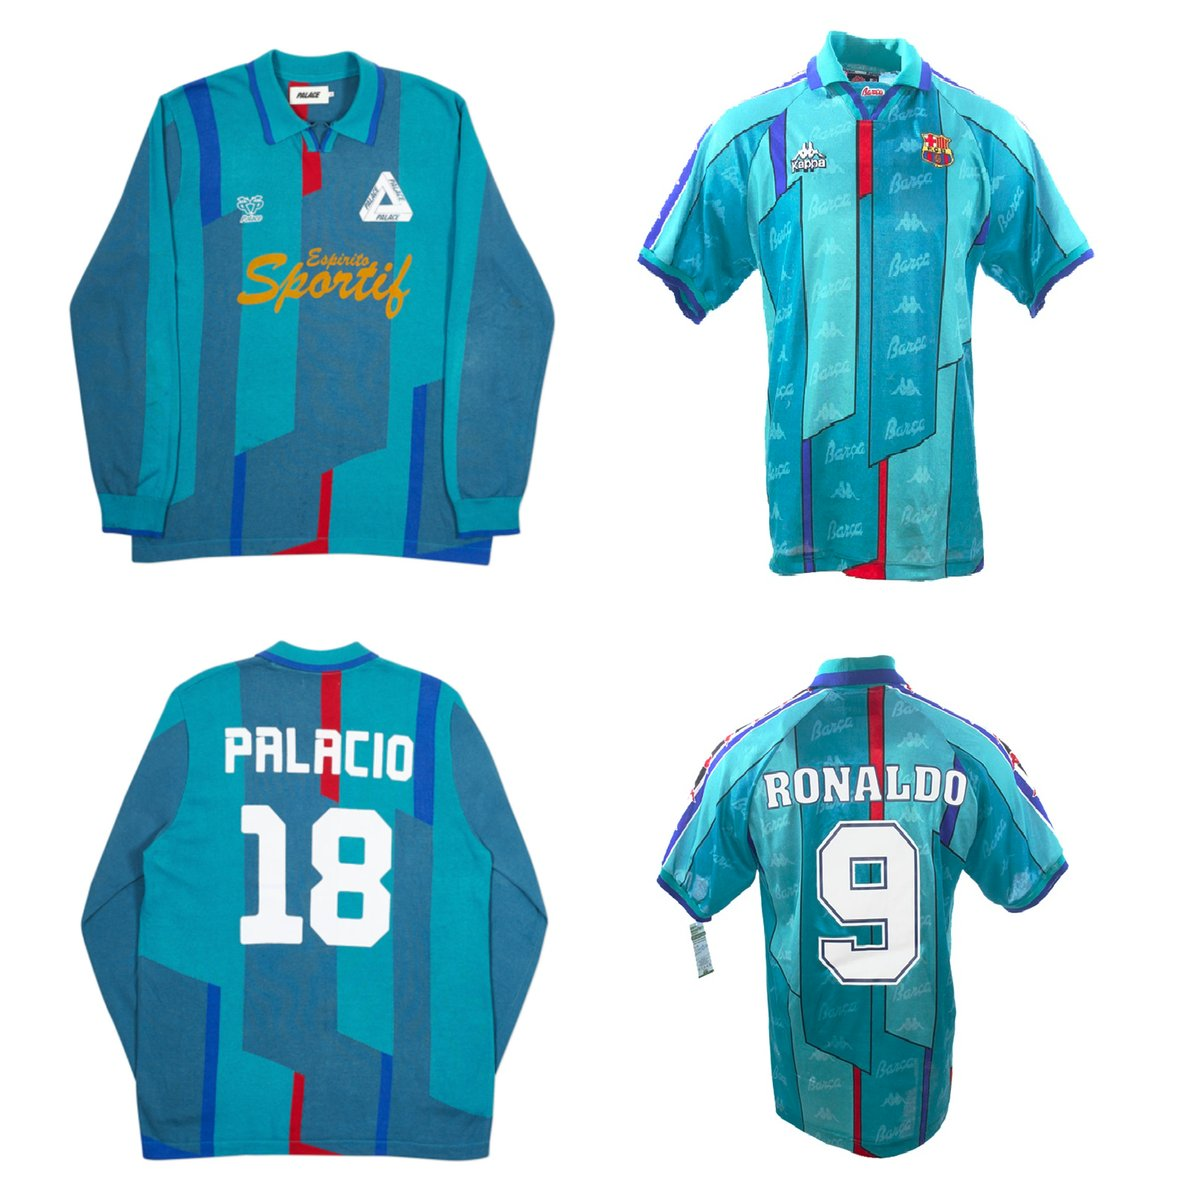 Palace Redesigned Barca's 1995 Away Jersey for their Autumn 2018 Range